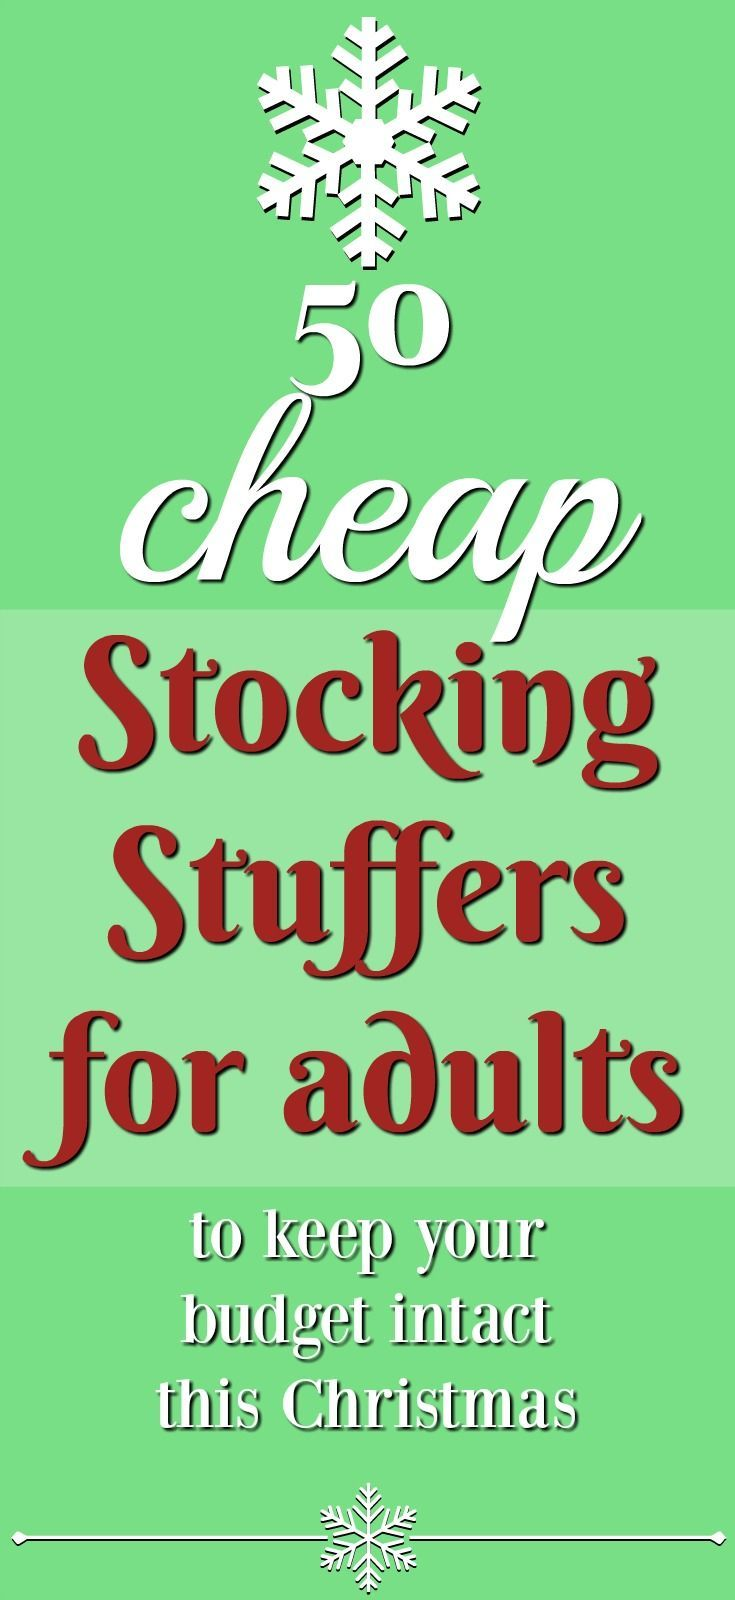 Cheap Stocking Stuffers Under $5 for Adults   Frugal Stocking Stuffer Ideas   Cheap Stocking Fillers   Stocking Stuffers for Adults   Less than $5 Stocking Stuffers   Christmas Budget Tips   How to Spend Less on Christmas